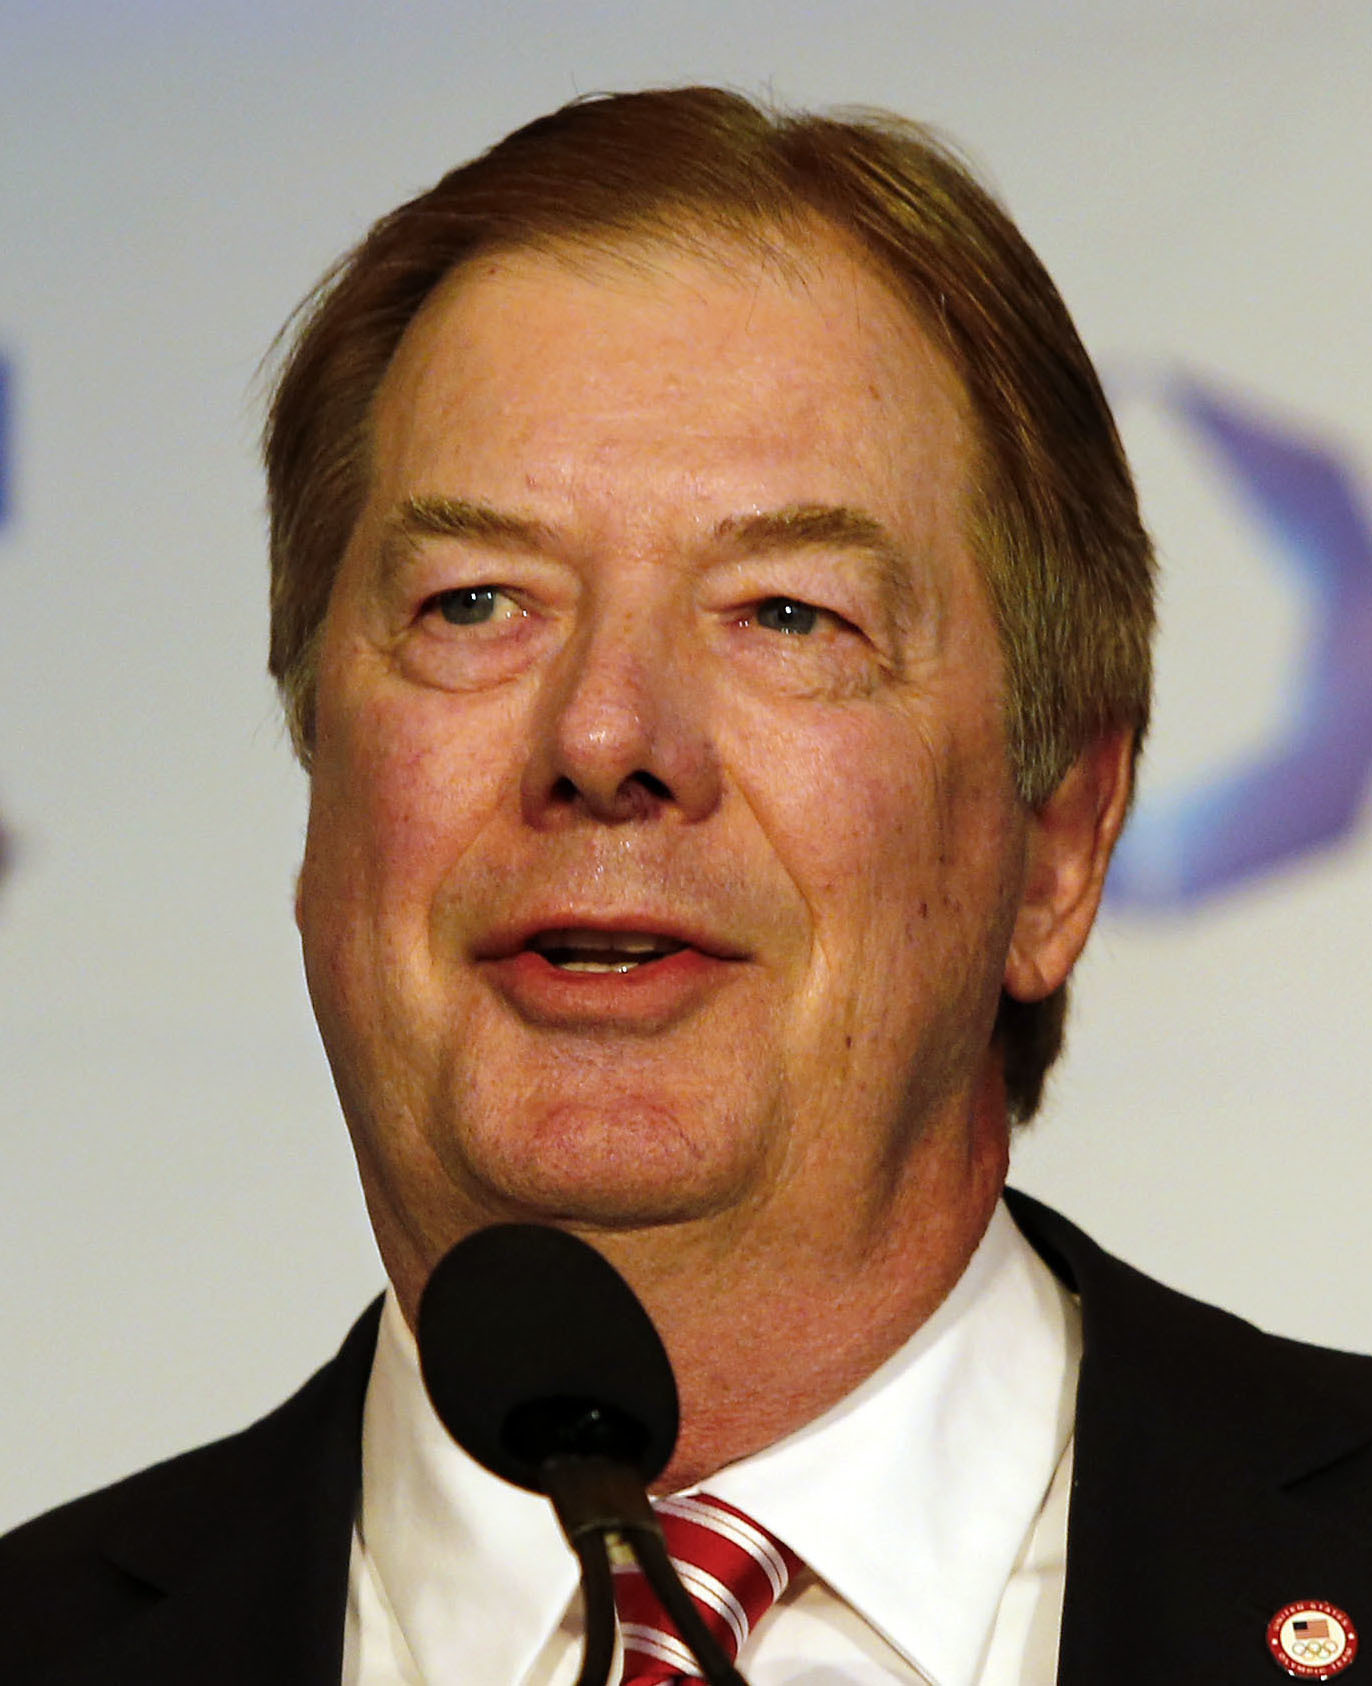 File- This Jan. 9, 2015, file photo shows USOC Chairman of the Board Larry Probst speaking during a news conference in Boston. The leader of the U.S. Olympic Committee reiterated his support for allowing some Russians to compete at the Rio Games and said